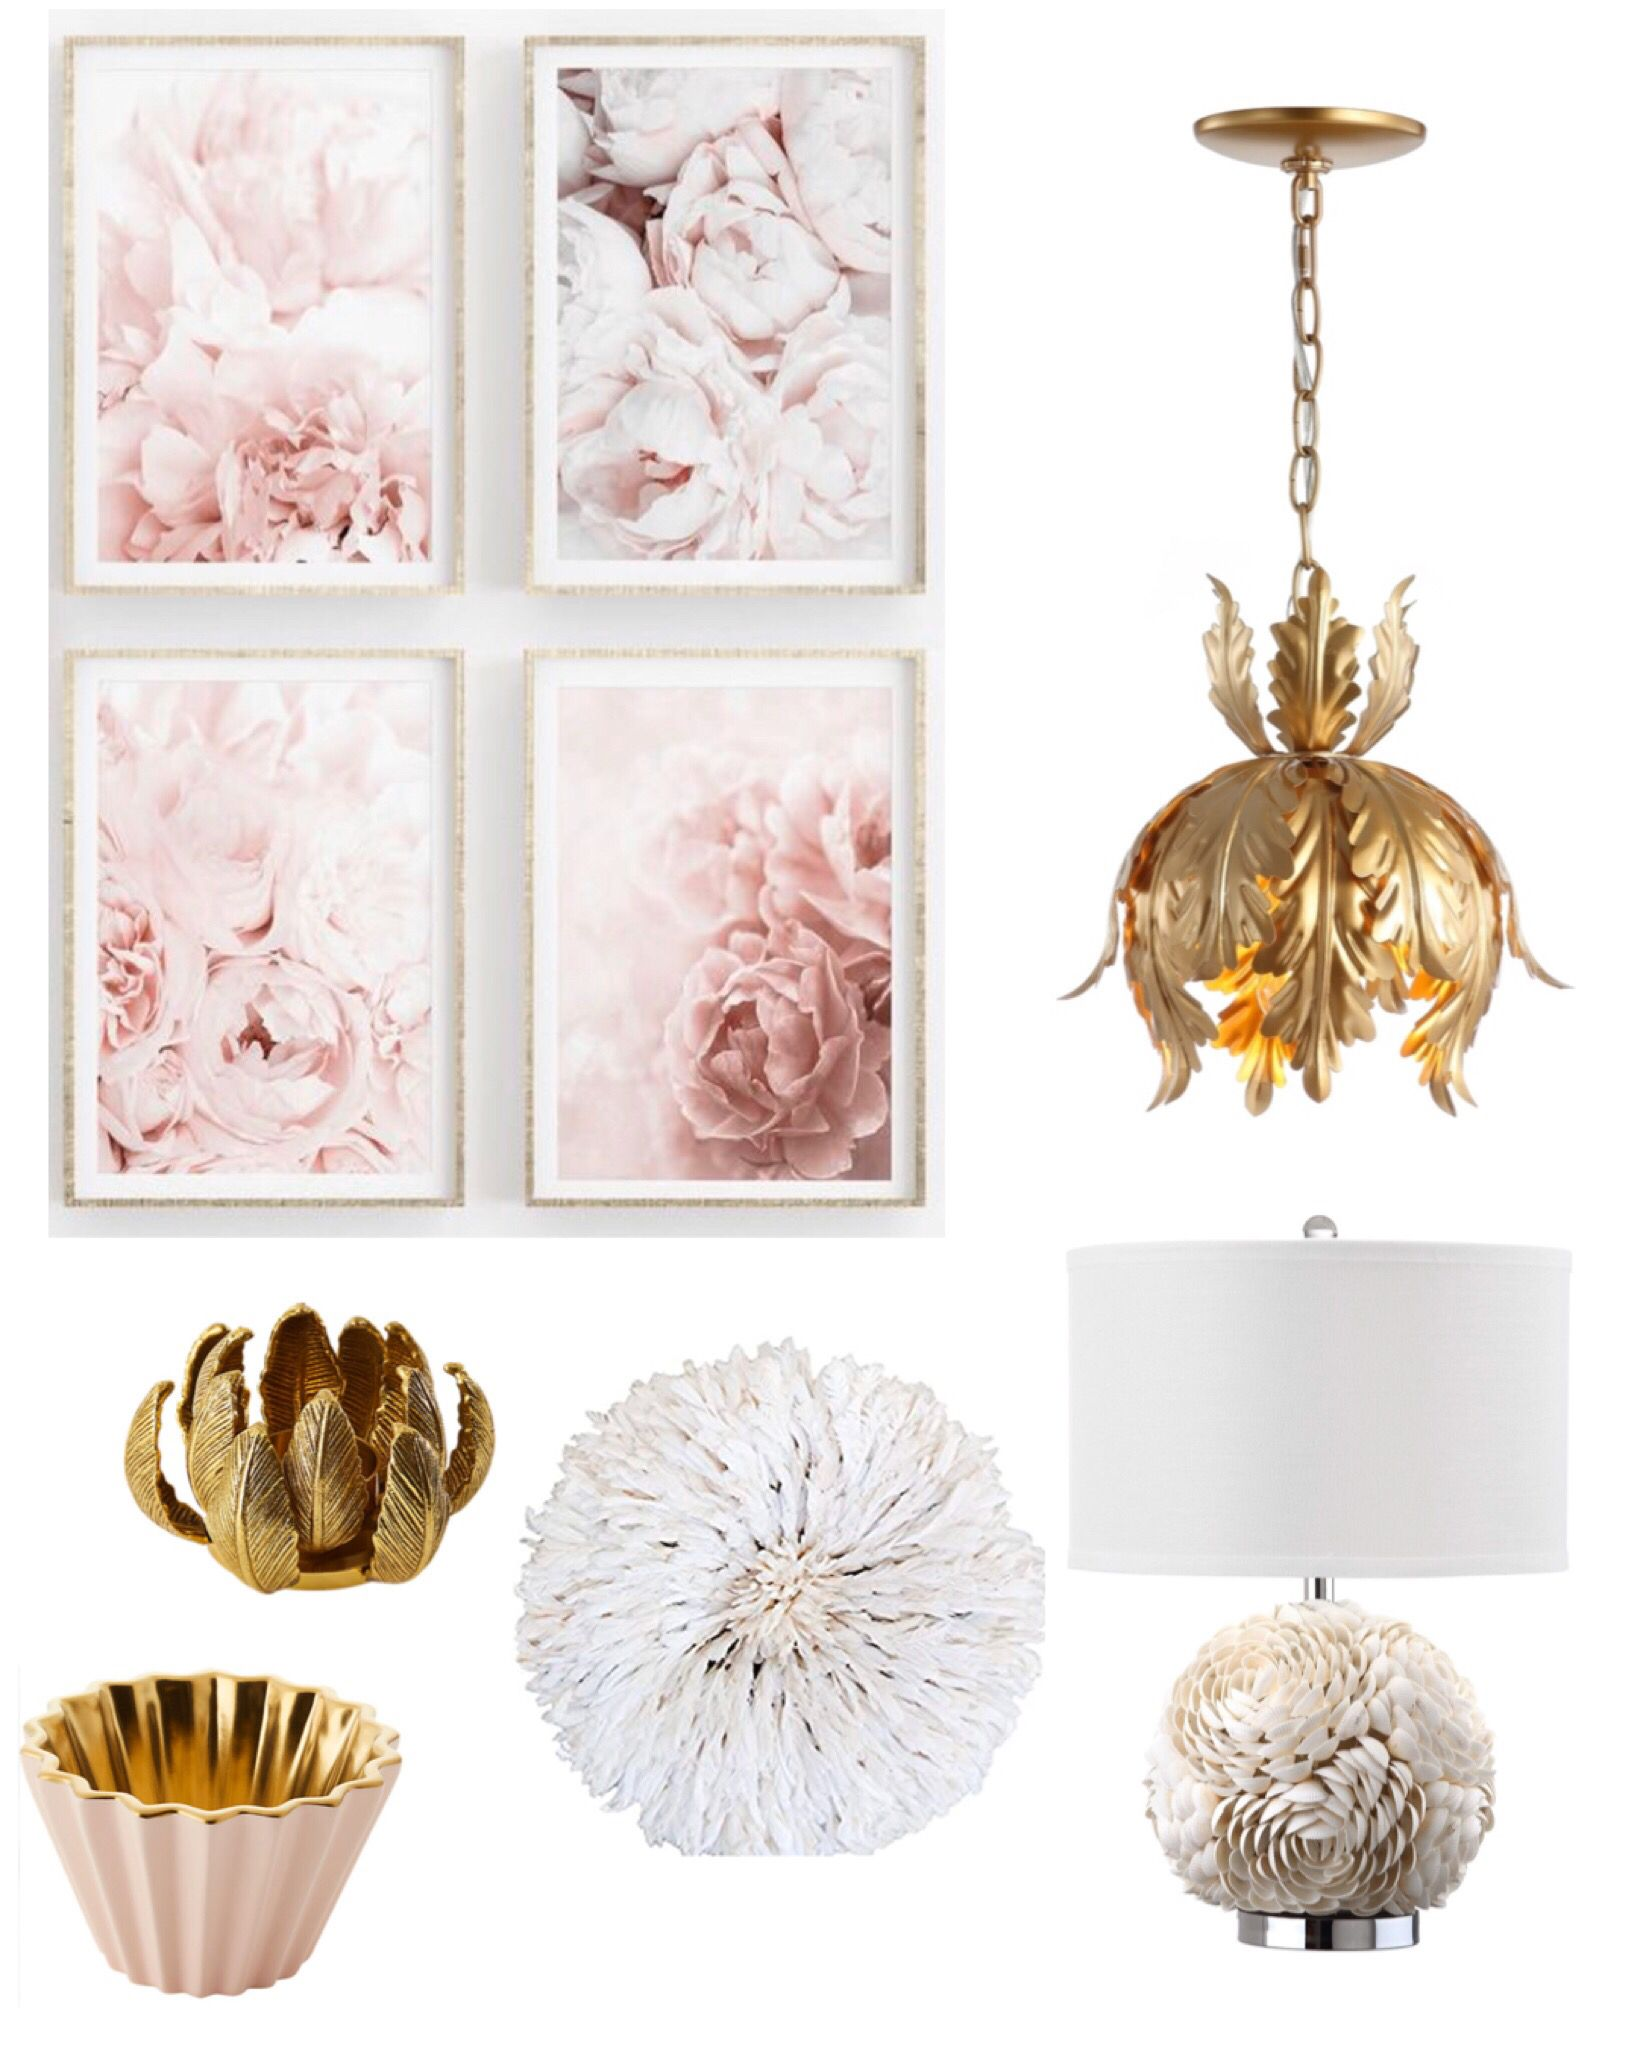 Pink home decor for the bedroom, office,living room or family room. #masterbathroom #masterbedroomideas #homedecor #homedecorideas #peonies #bedroom #bedroomdecor #jujuhat #candles #lighting #livingroom #livingroomdecor